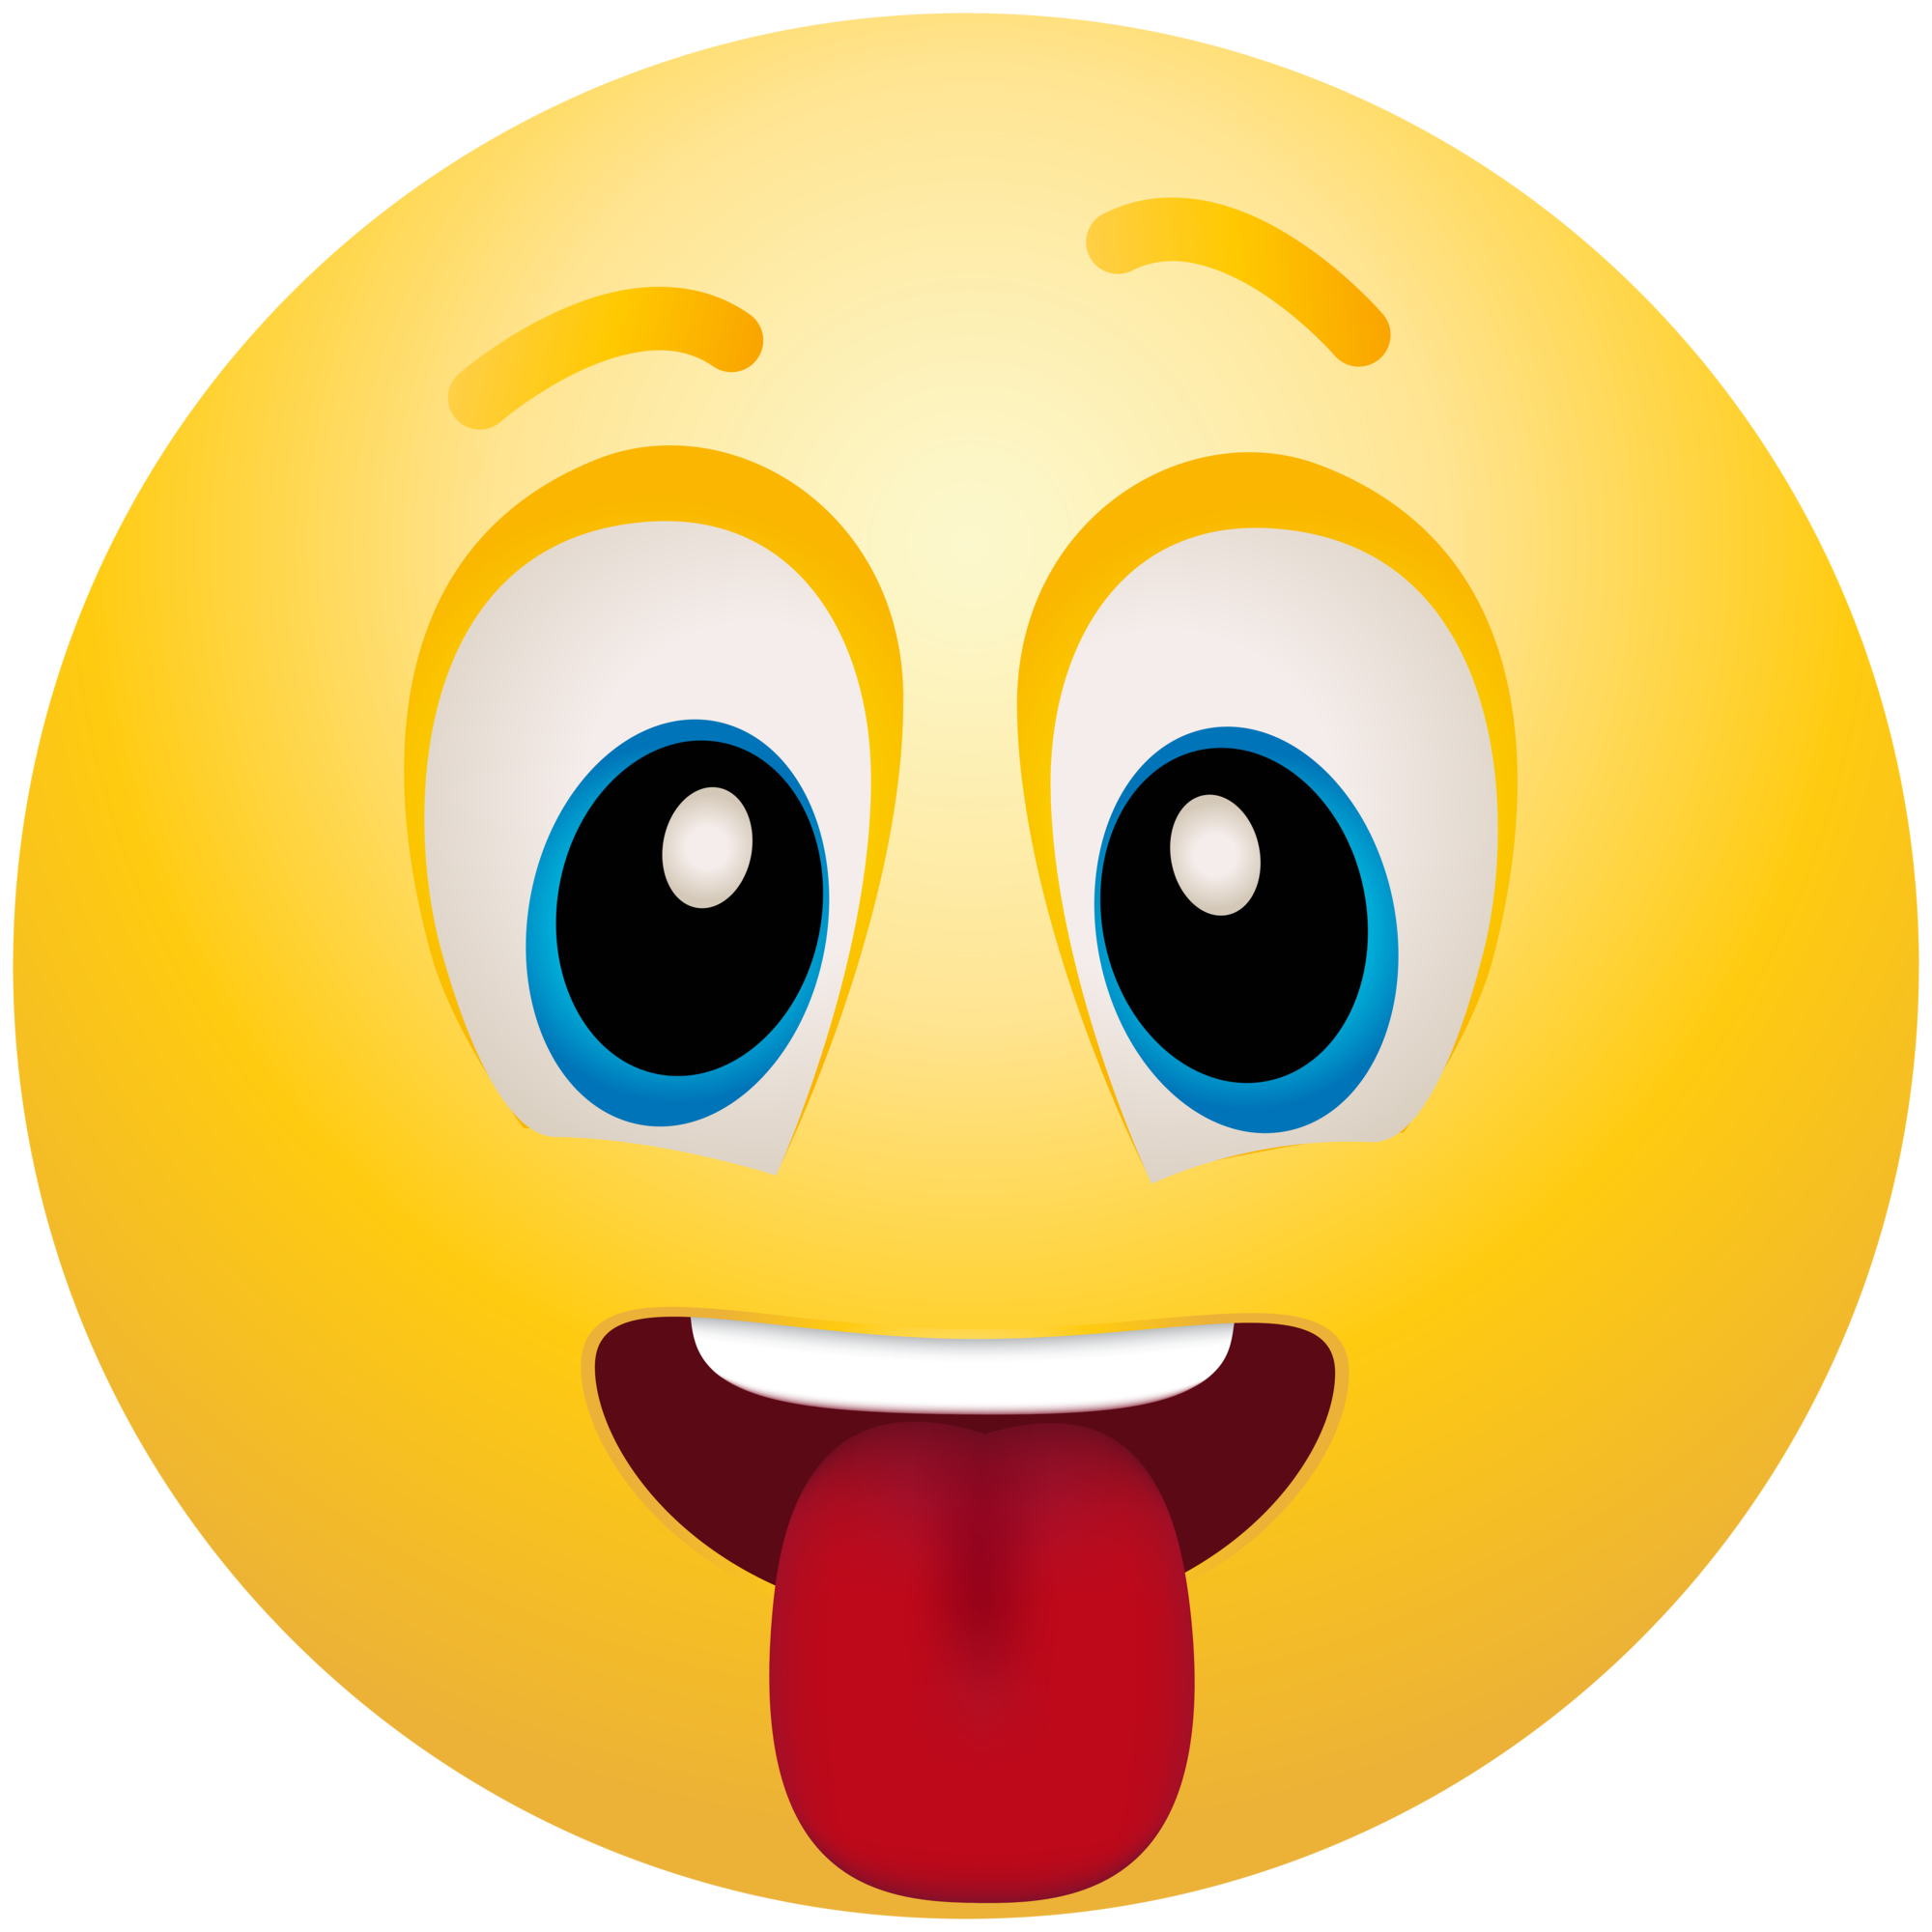 Emoji tongue out png. Emoticon clipart info